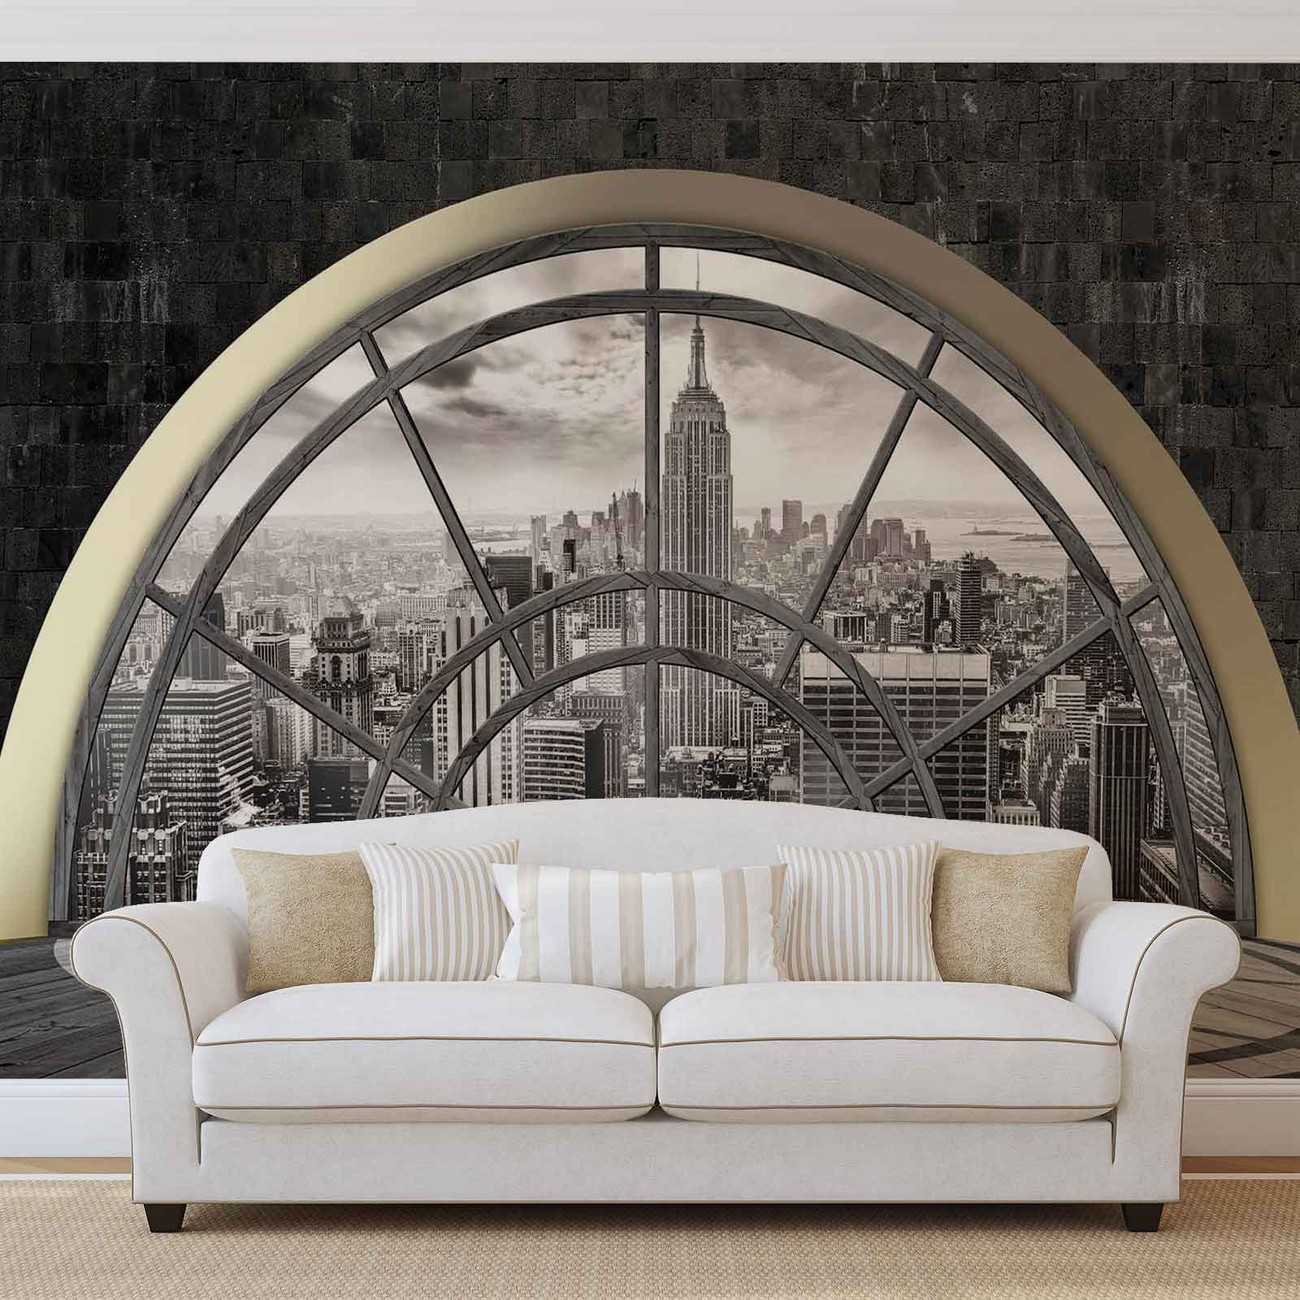 new york city skyline window wall paper mural buy at. Black Bedroom Furniture Sets. Home Design Ideas